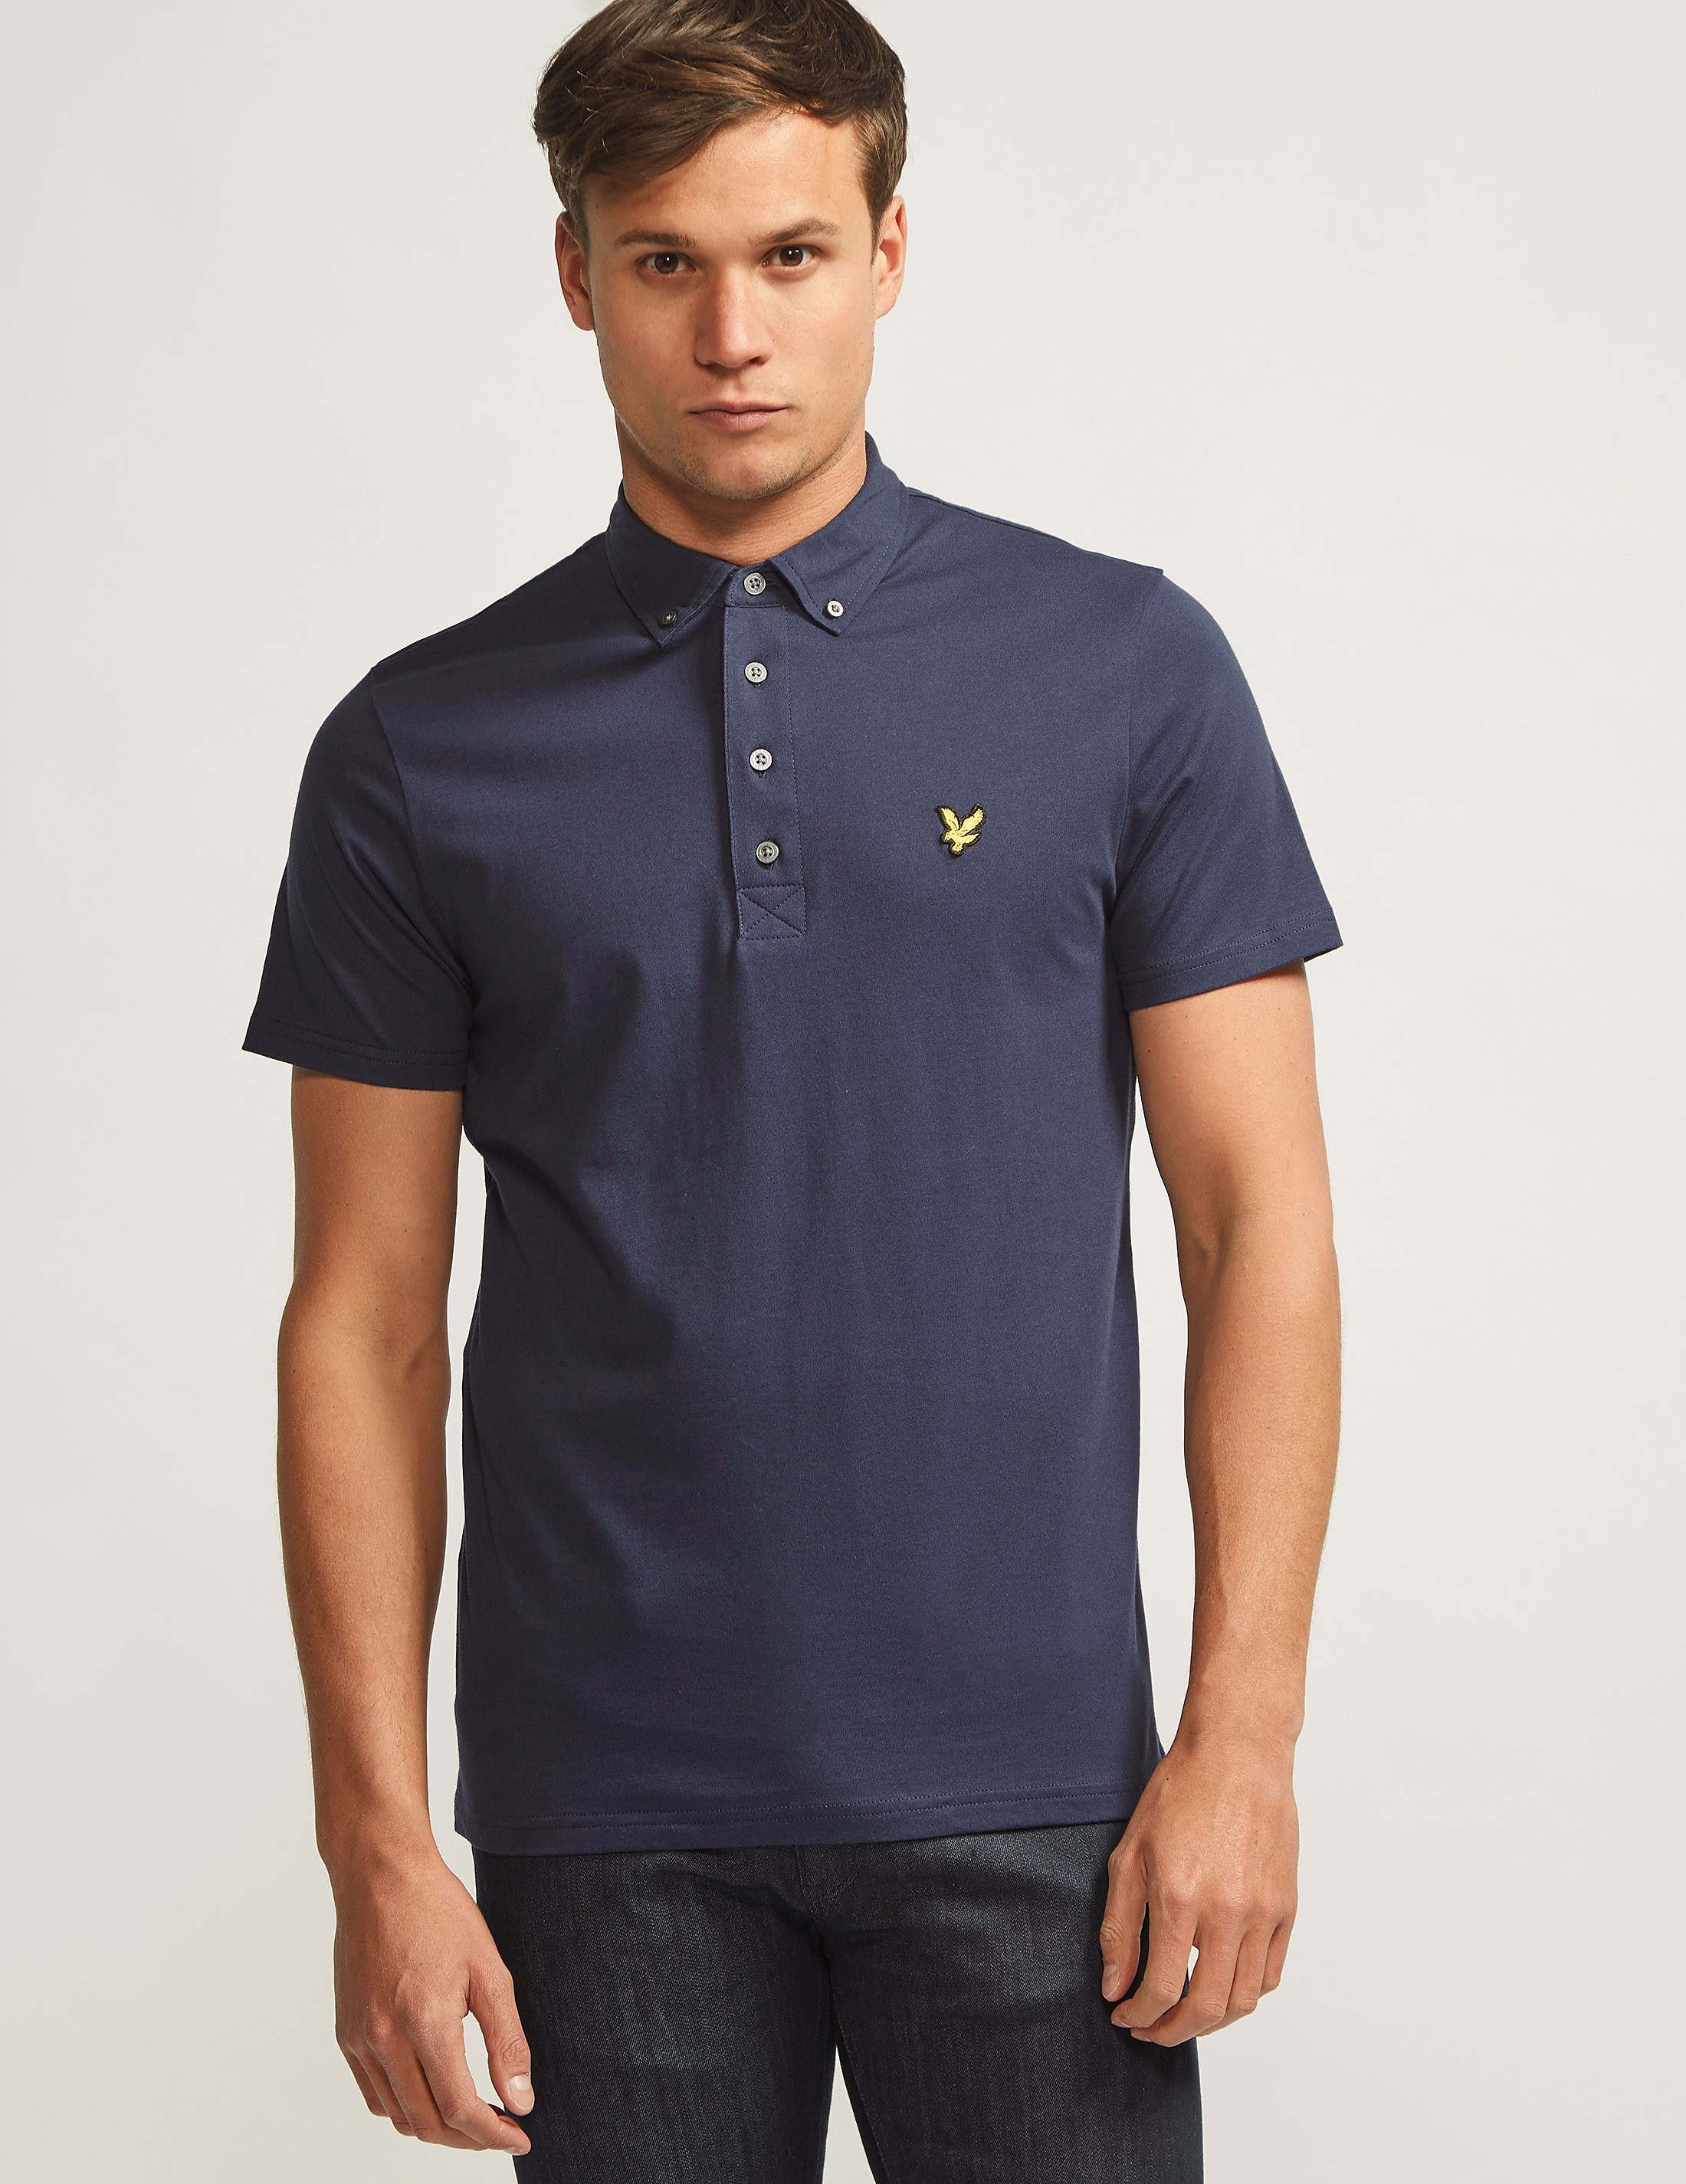 Lyle & Scott Jersey Short Sleeve Polo Shirt